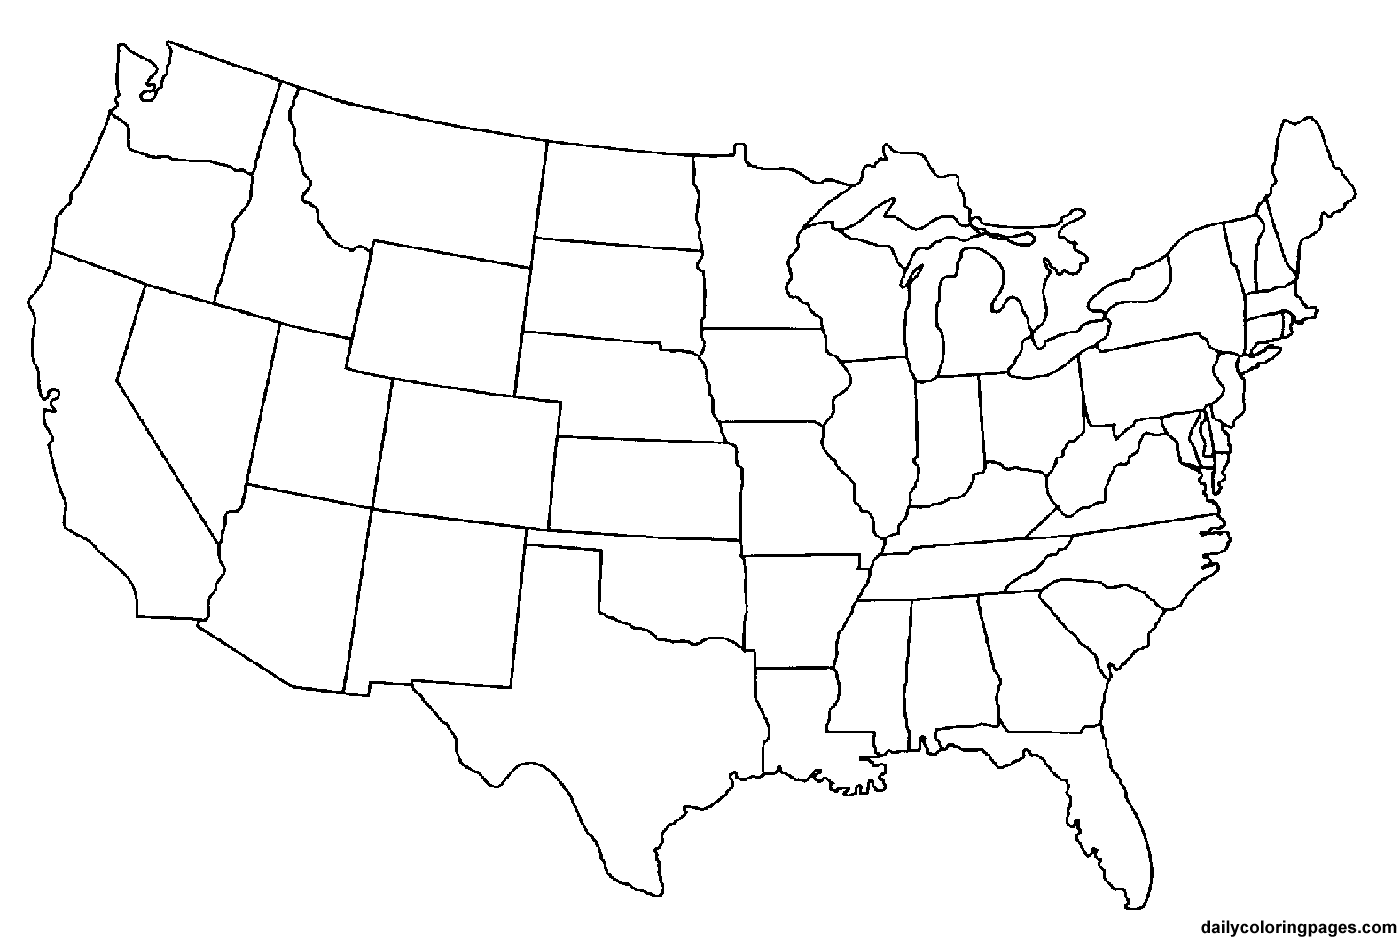 Diagram Collection Blank Us Map Printout More Maps Diagram And - Blank usa map images